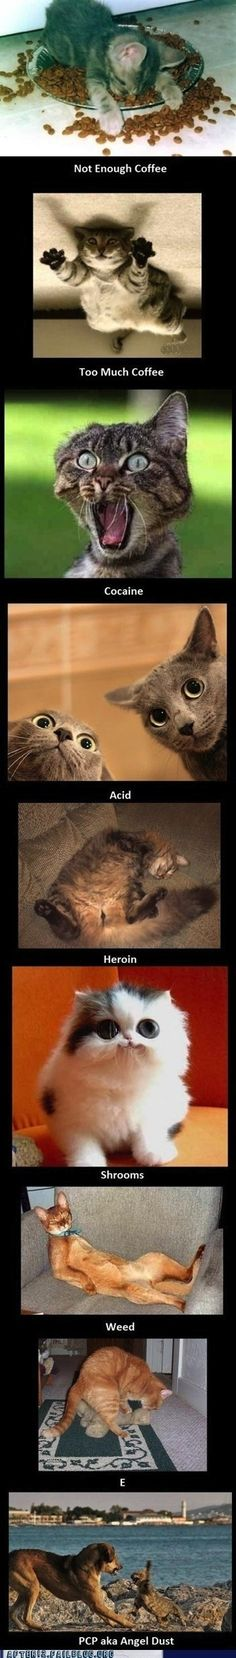 After 12: Crunk Critters: Is Your Cat On Drugs? Here's What To Look For - Cheezburger